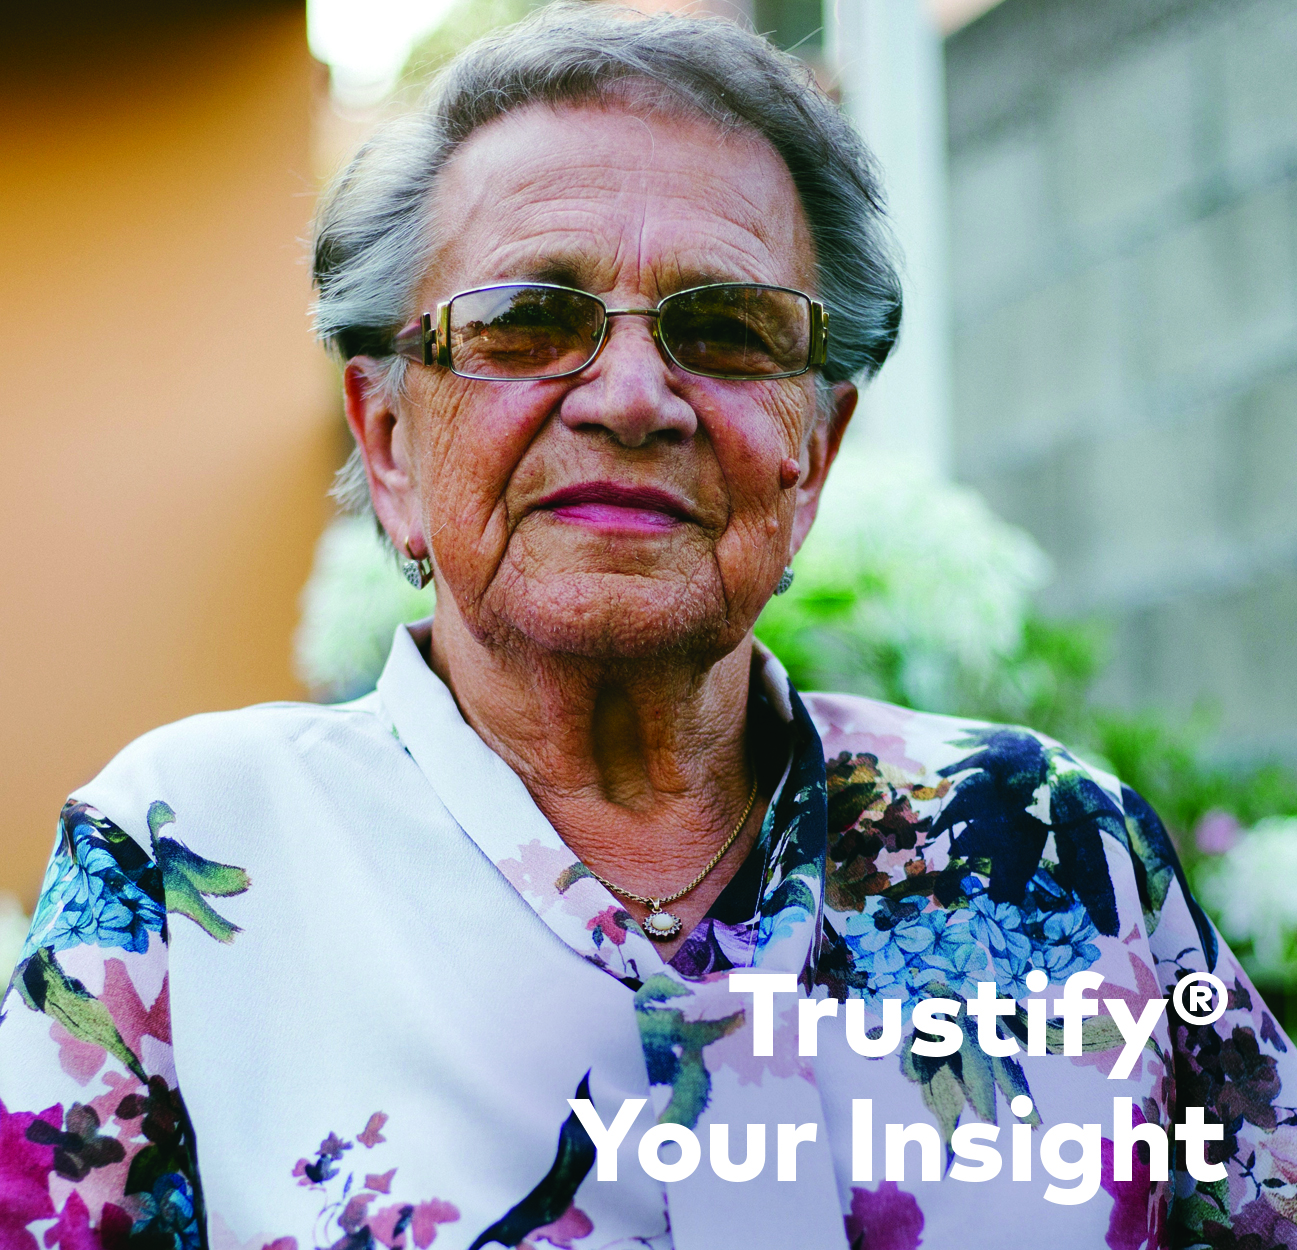 Mext_Consulting_Firm_Melbourne_Trust_Trustify_Your_Insight_new.jpg